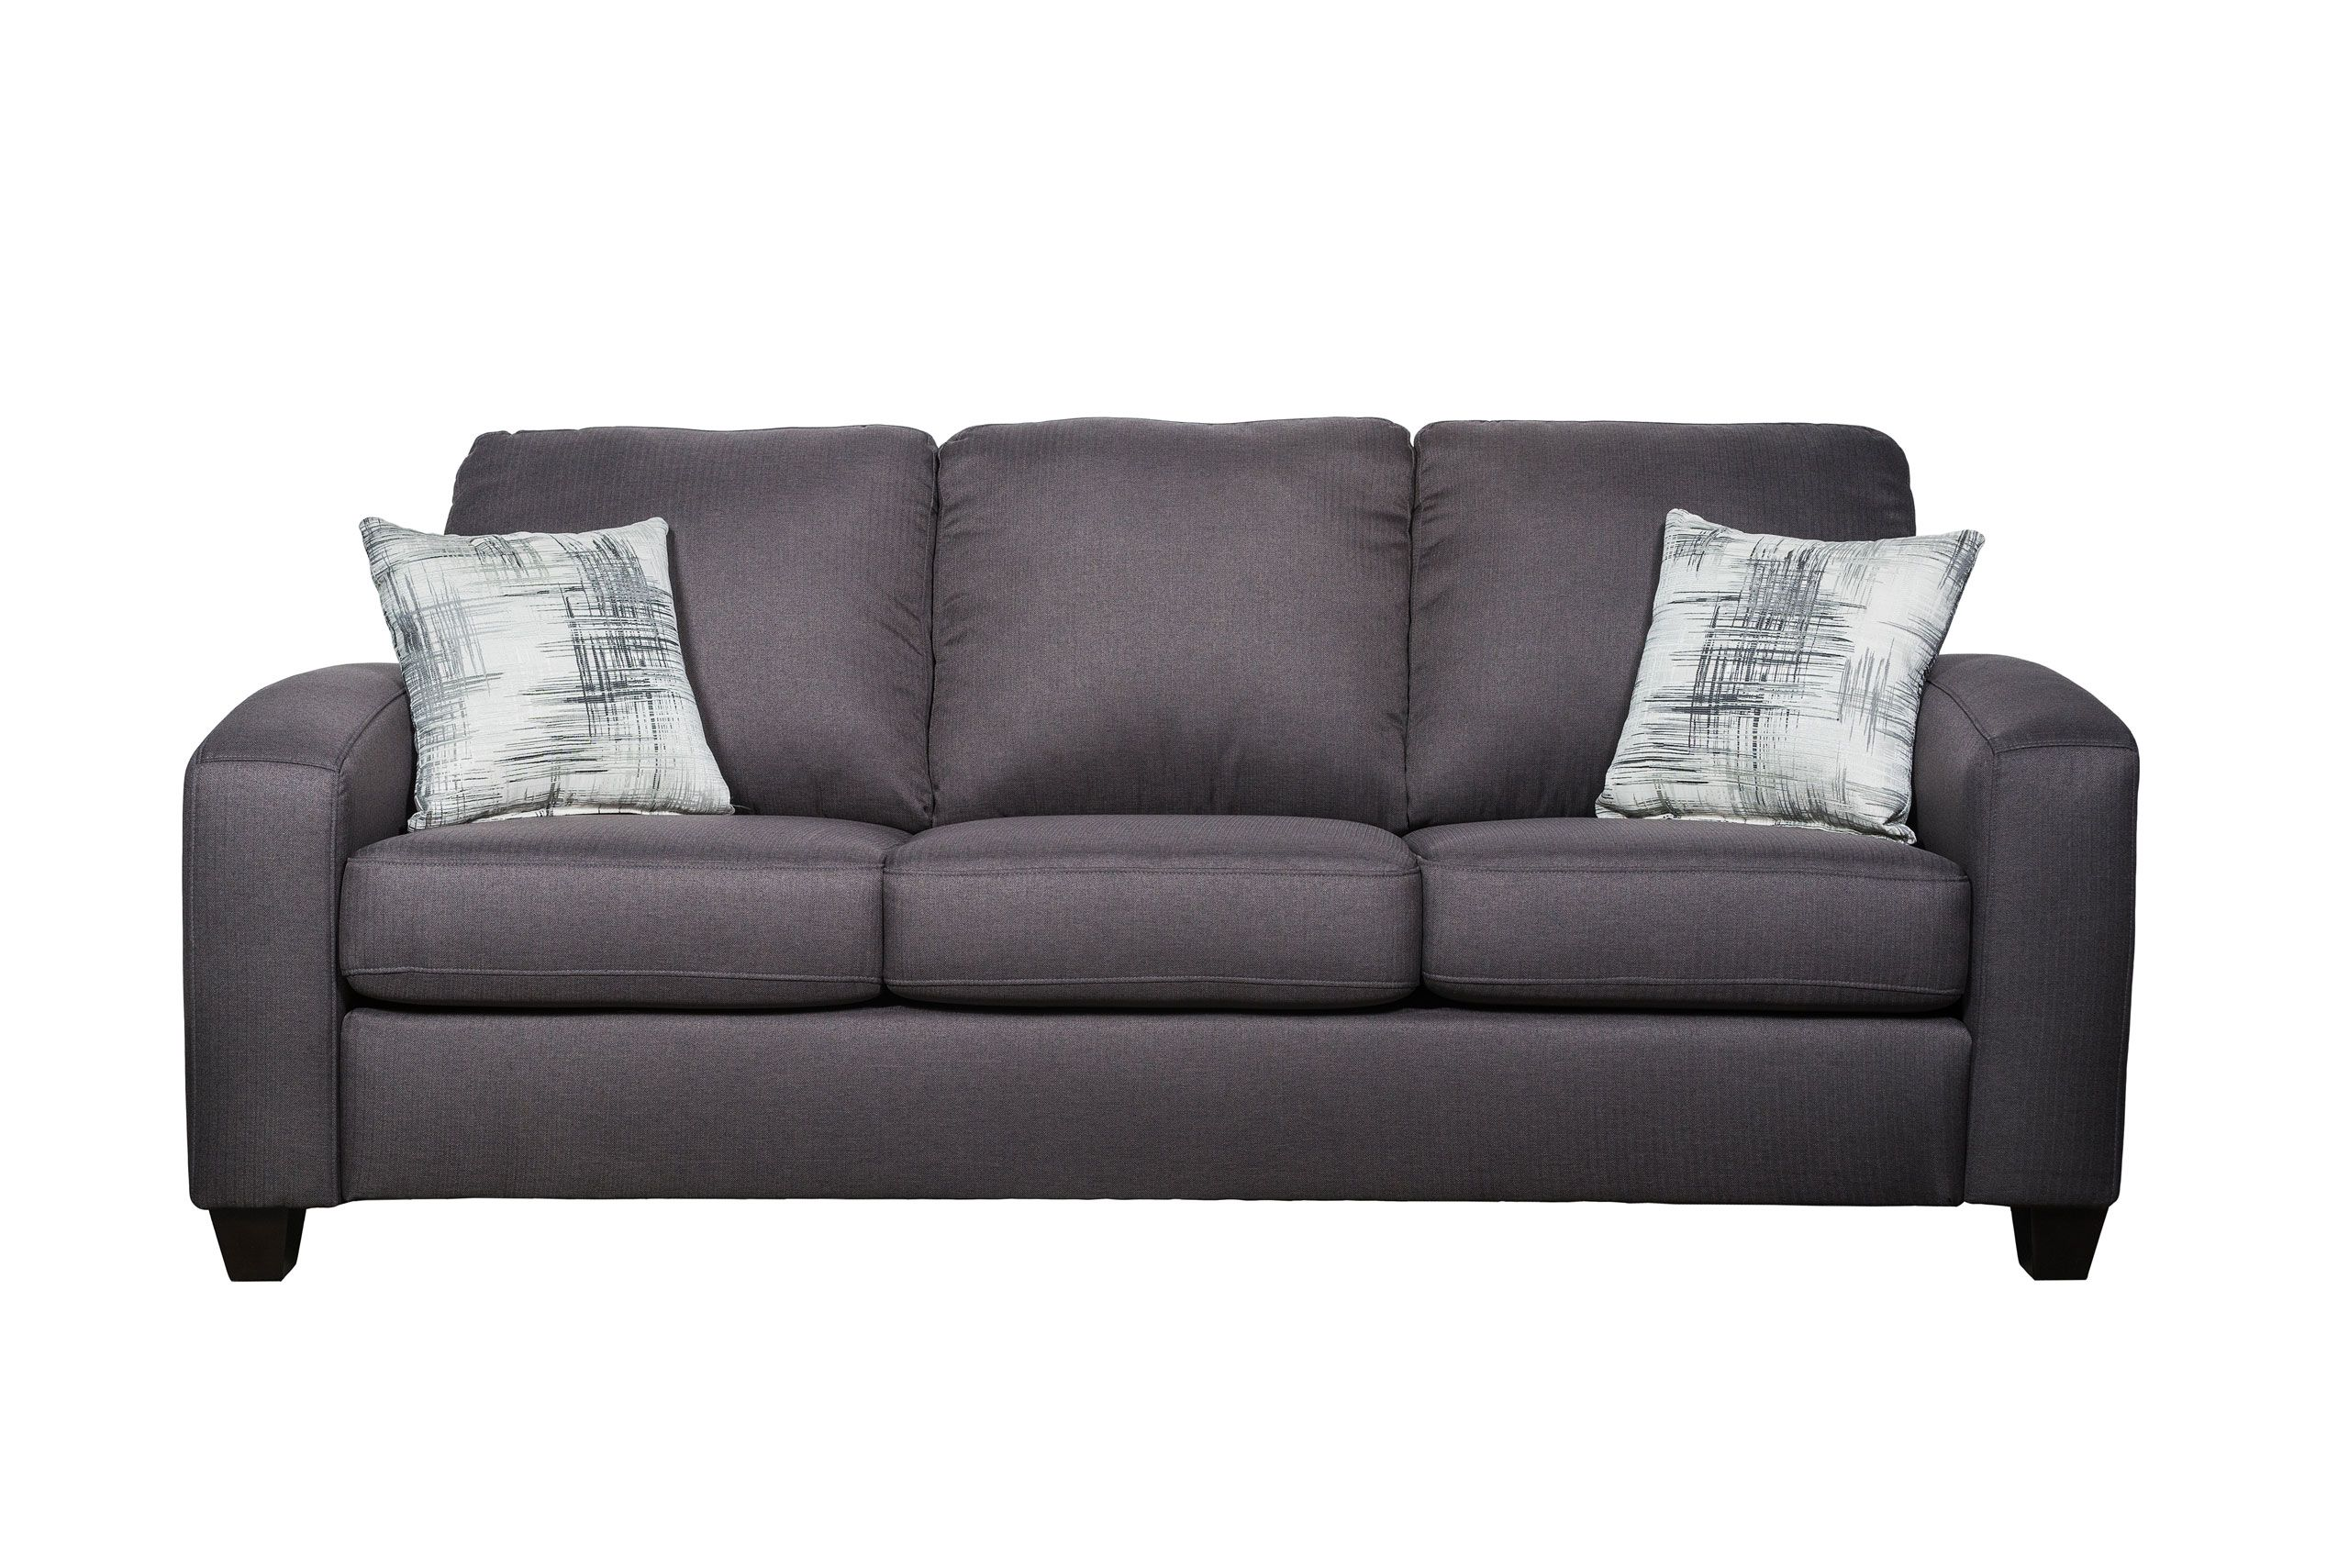 Canadian Made Dawson Sofa Now Only 999 Price Includes Tax Free Delivery